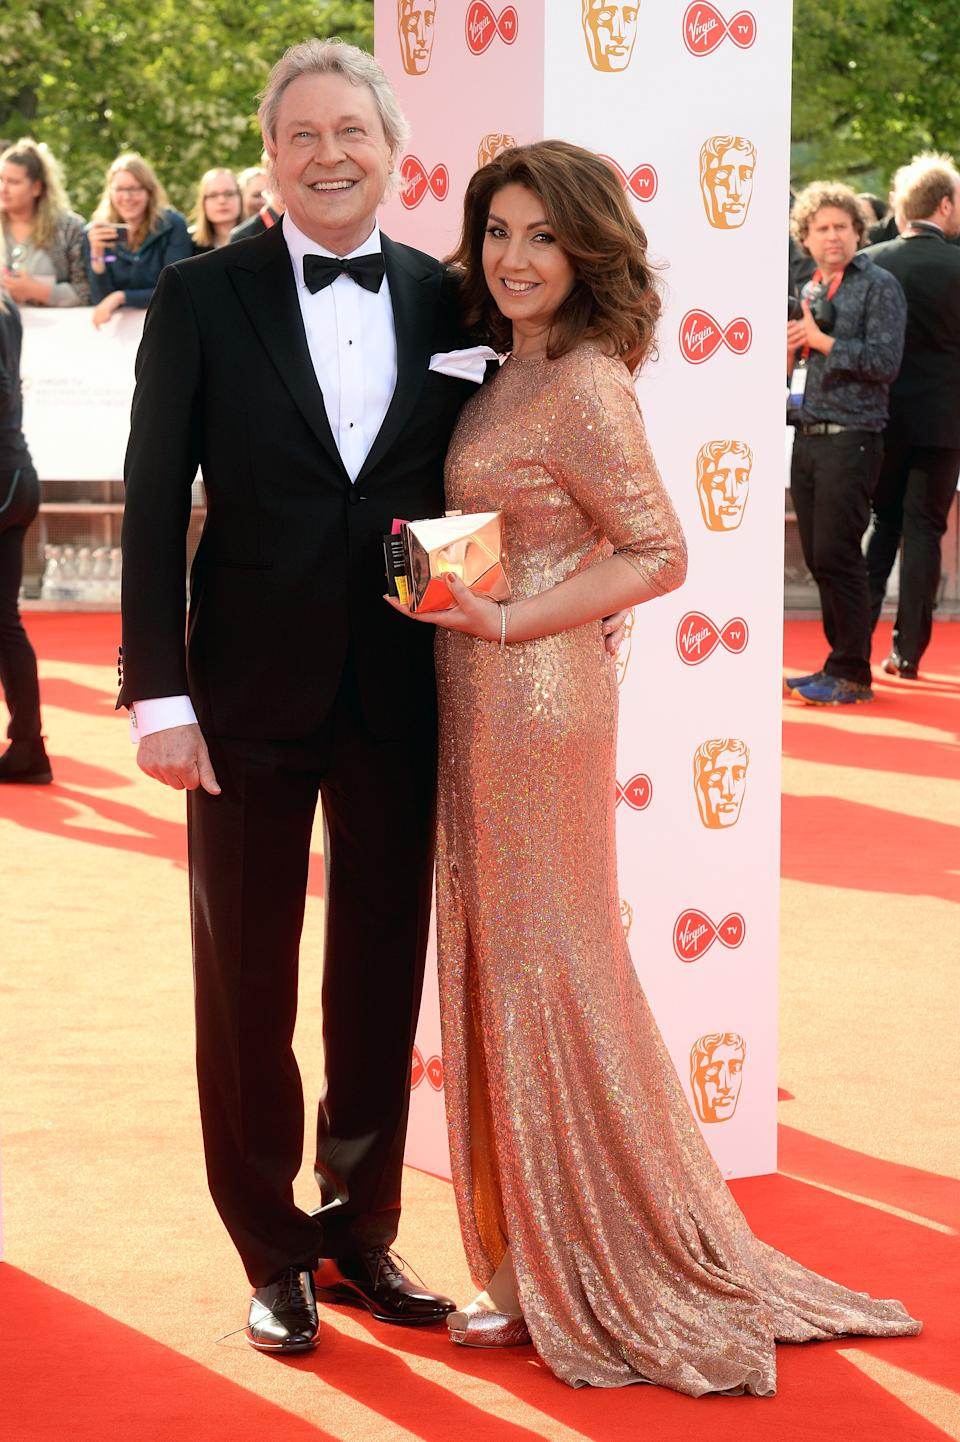 Eddie Rothe and Jane McDonald pictured at the TV Baftas in 2018 (Photo: Dave J Hogan via Getty Images)